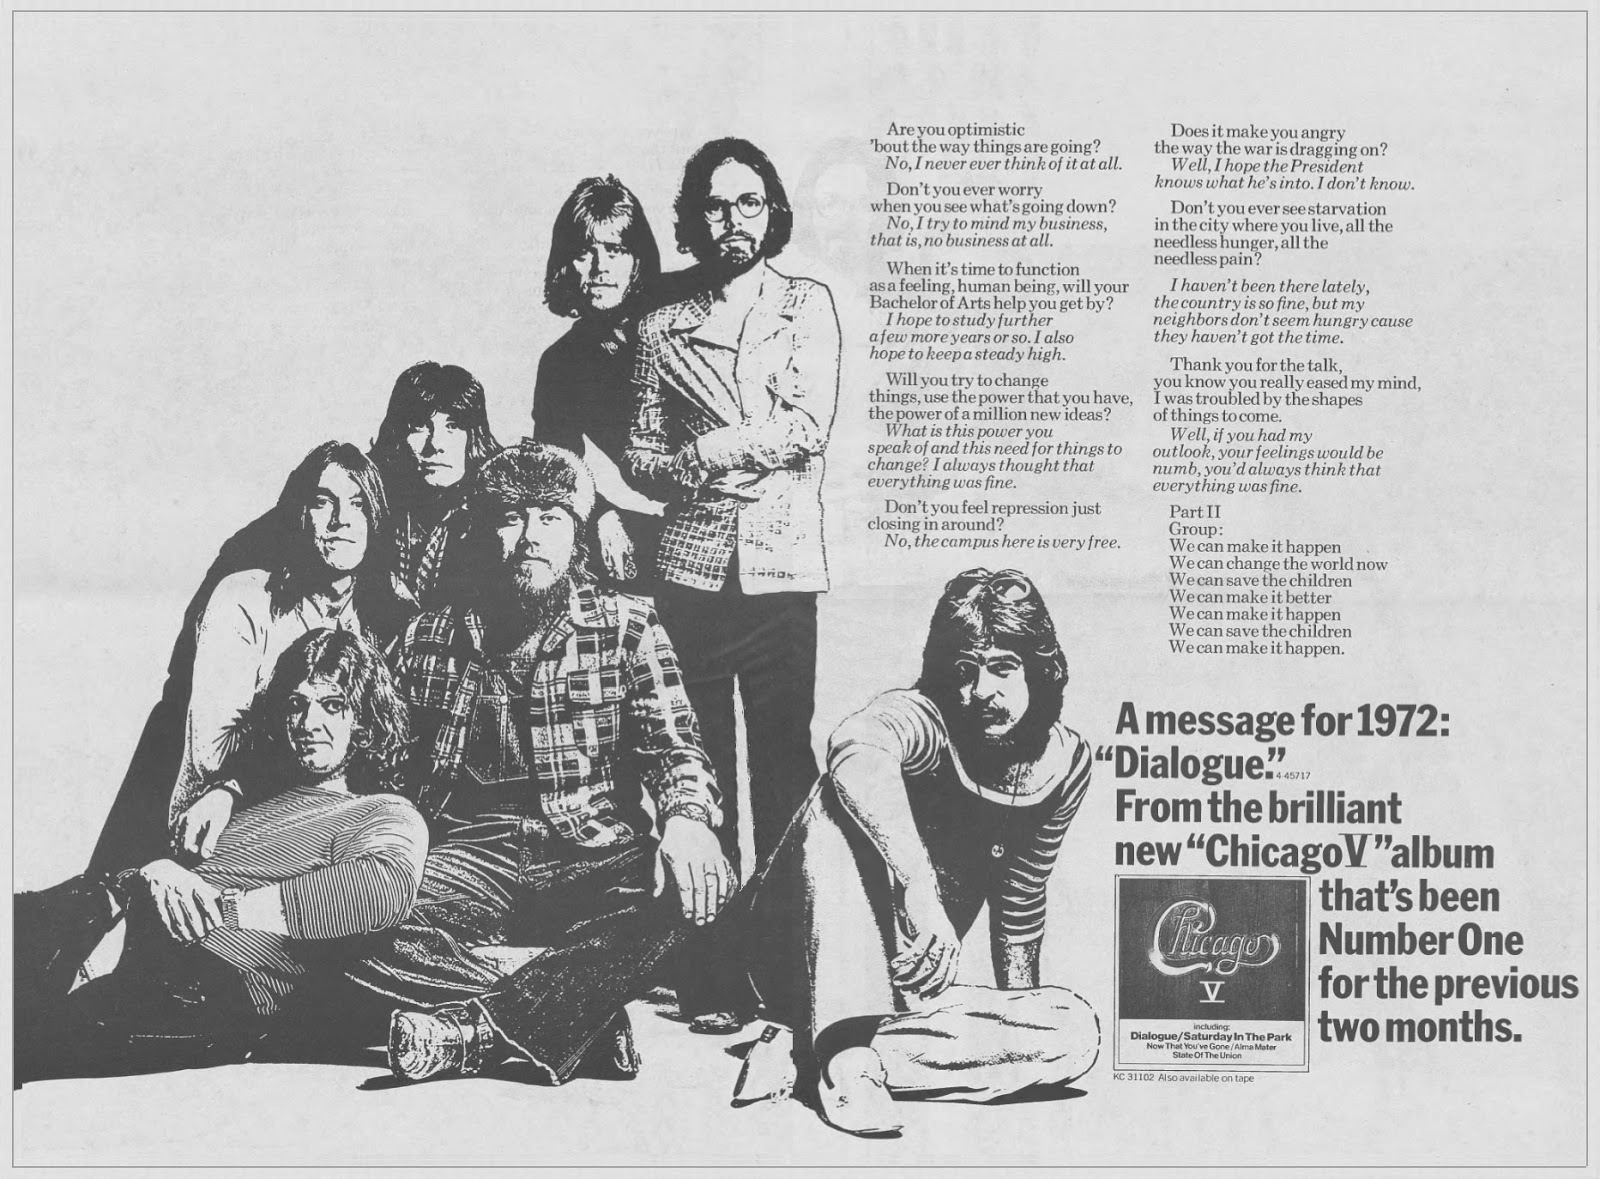 Chicago V Advertisement 1972